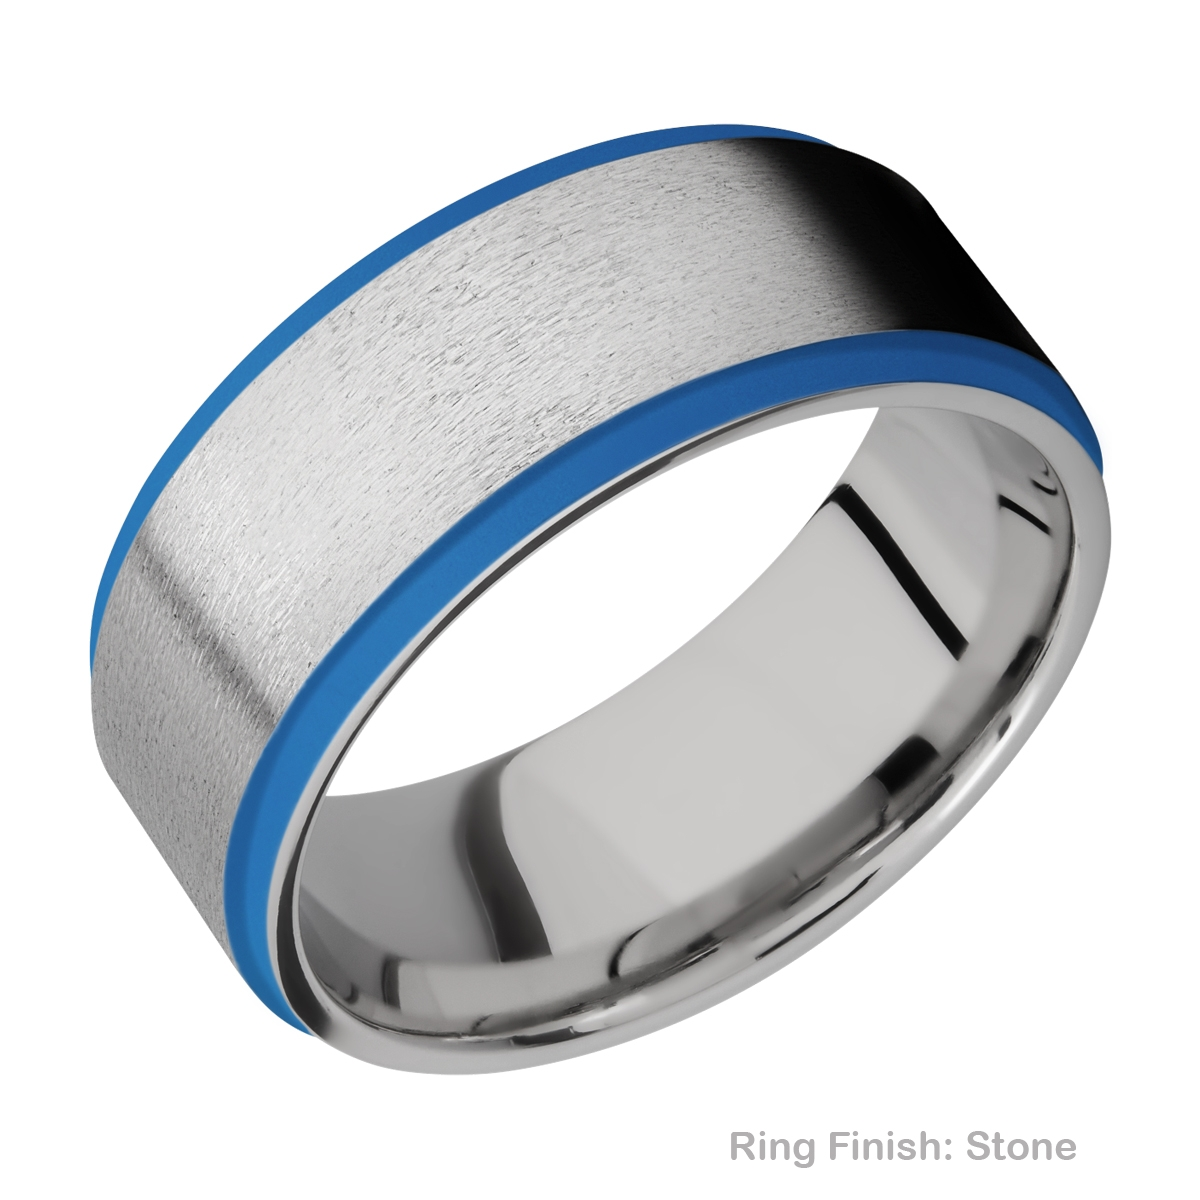 Lashbrook CC10FGE21EDGE/A/CERAKOTE Cobalt Chrome Wedding Ring or Band Alternative View 7